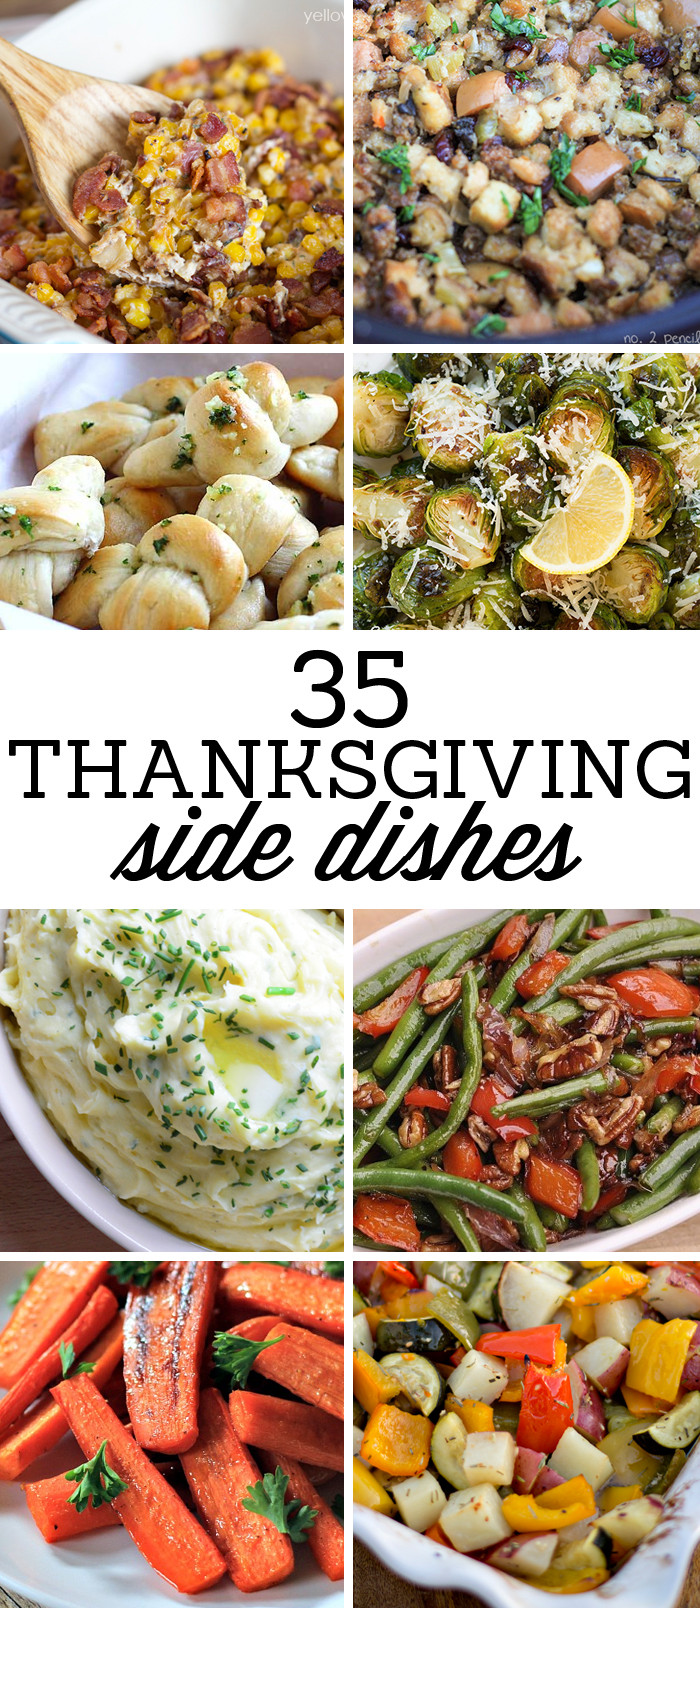 Thanksgiving Dinner Side Dishes Recipes  35 Side Dishes for Christmas Dinner Yellow Bliss Road